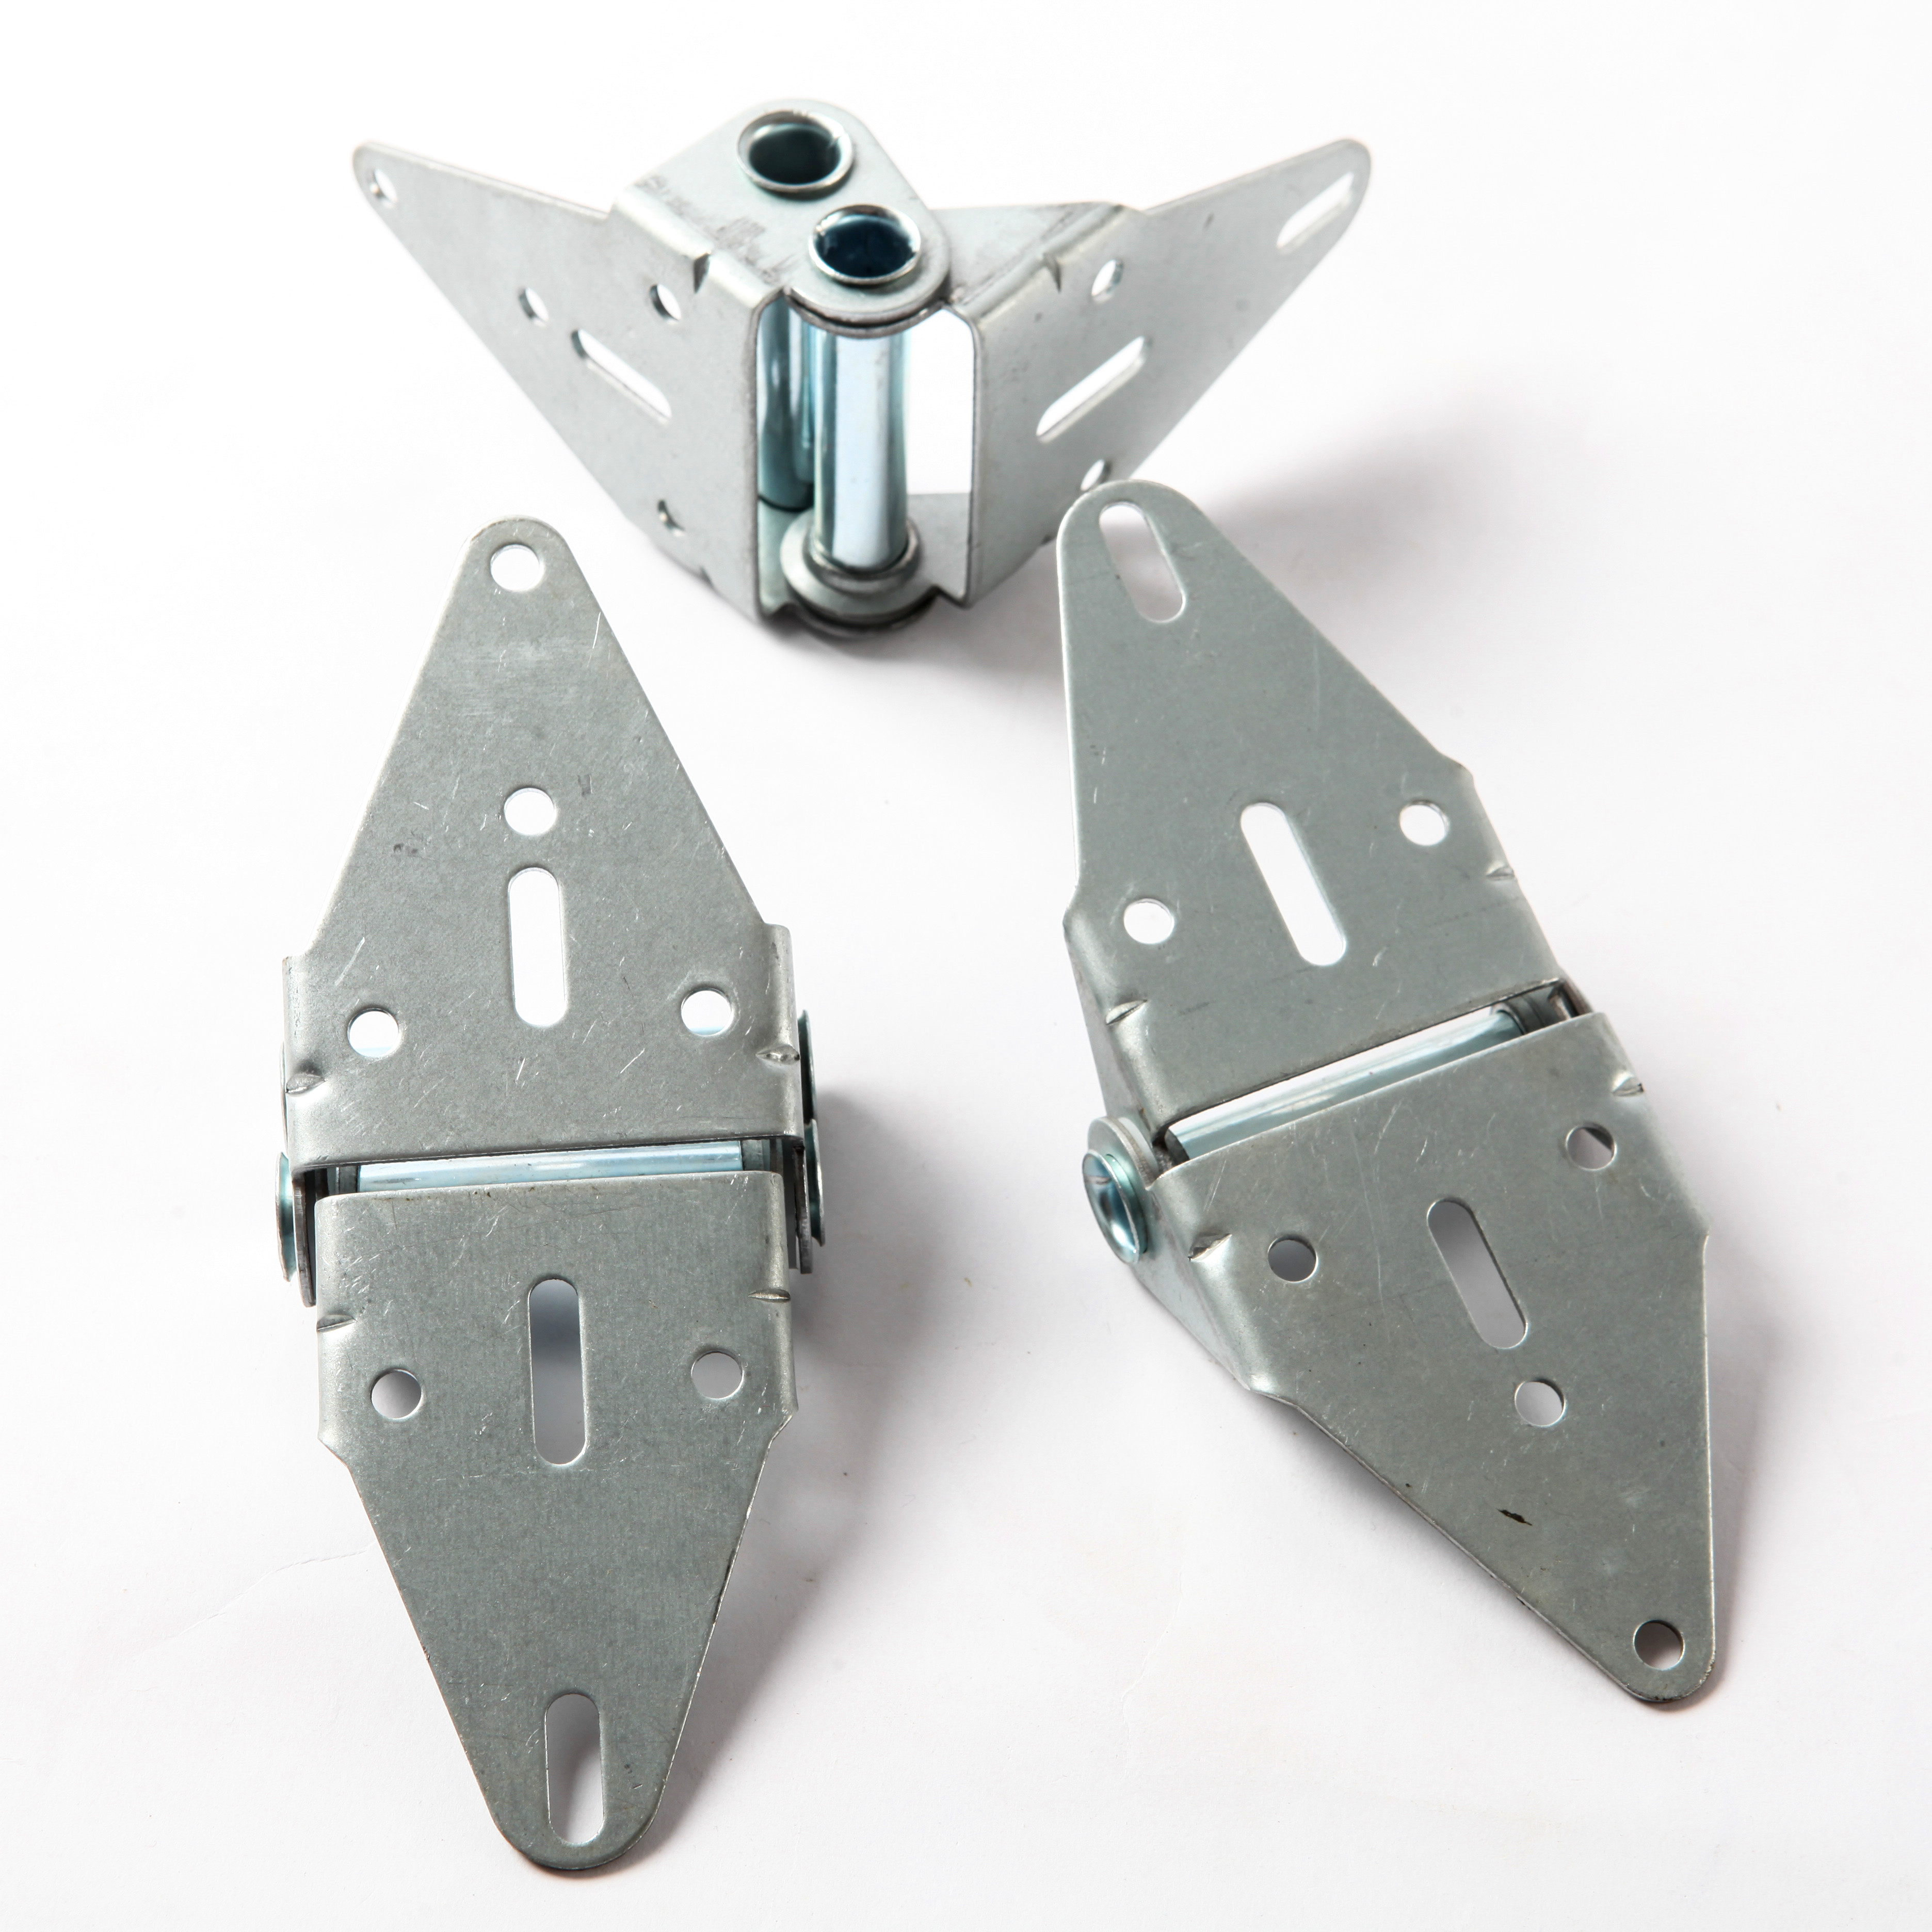 Factory direct plate tilting remote control electric garage door hinge between the 3 parts (a, No. two board)